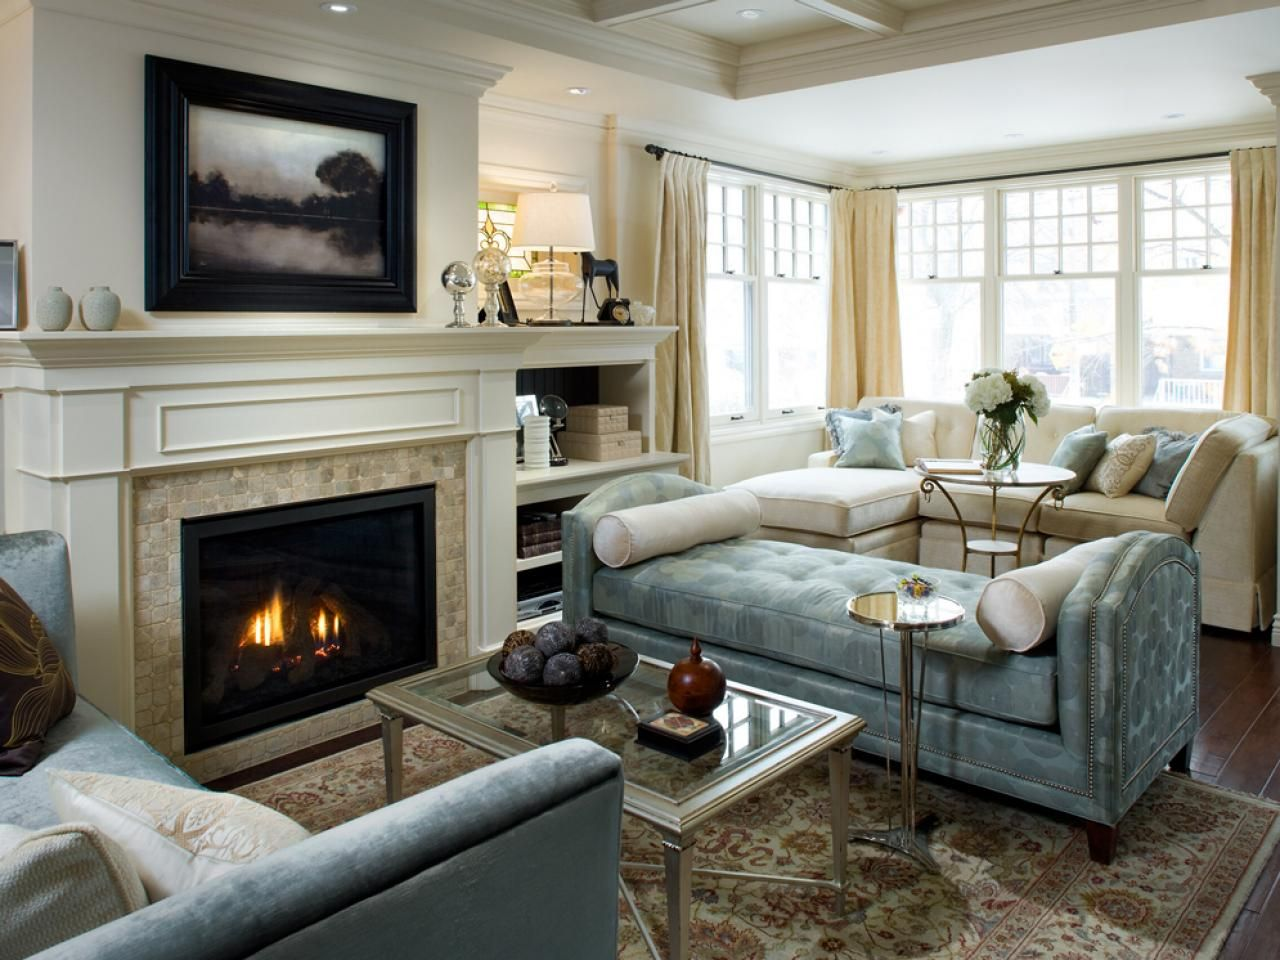 12x12 living room layout - google search | living rooms